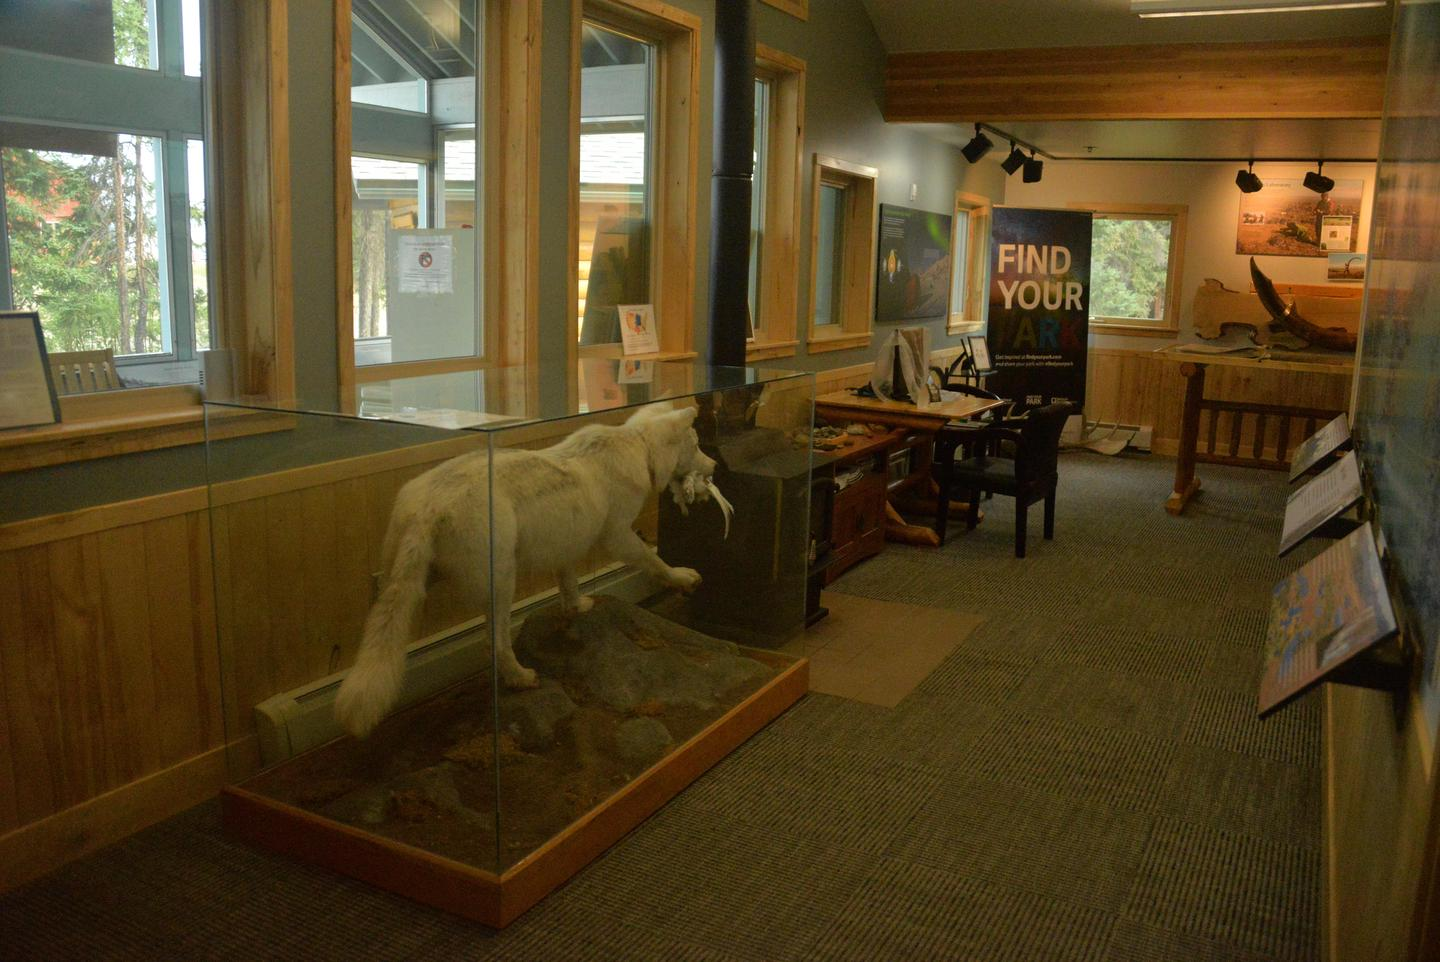 Interior of Bettles Ranger StationThe interior of the Bettles Ranger Station has information and exhibits about the park and its wildlife.